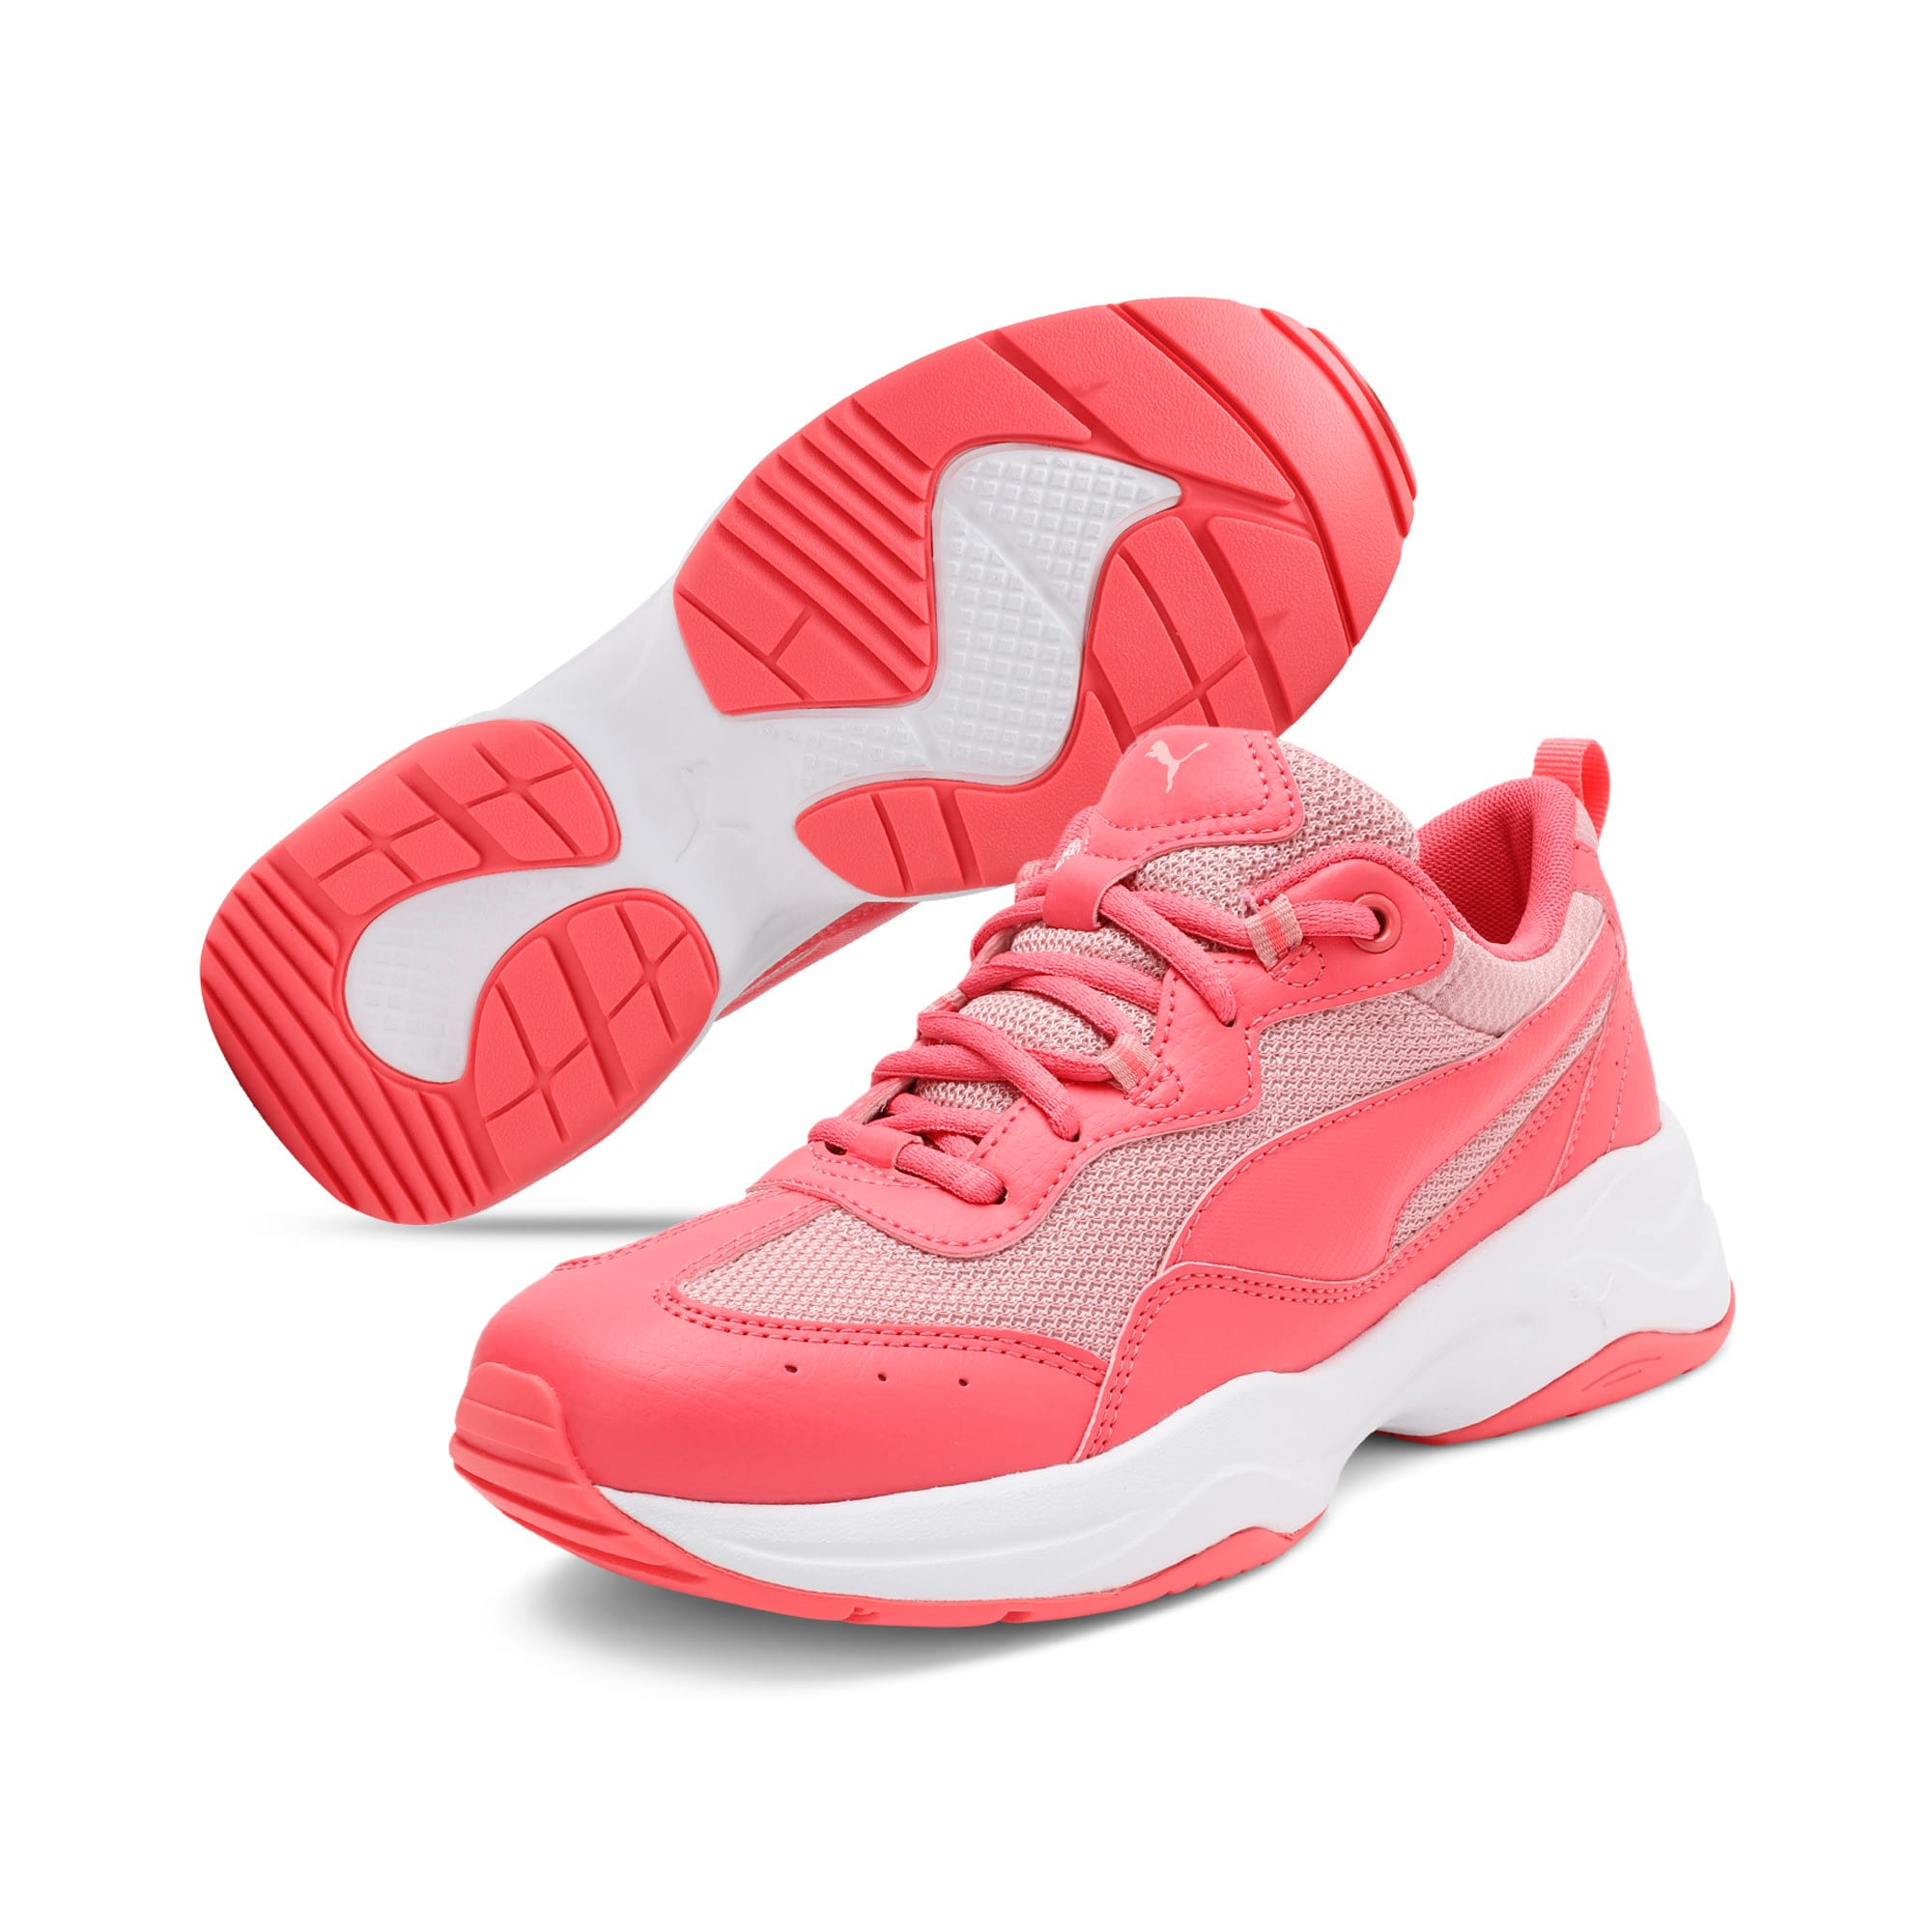 Thumbnail 2 of Cilia Youth Trainers, Calypso Coral-B Rose-White, medium-IND